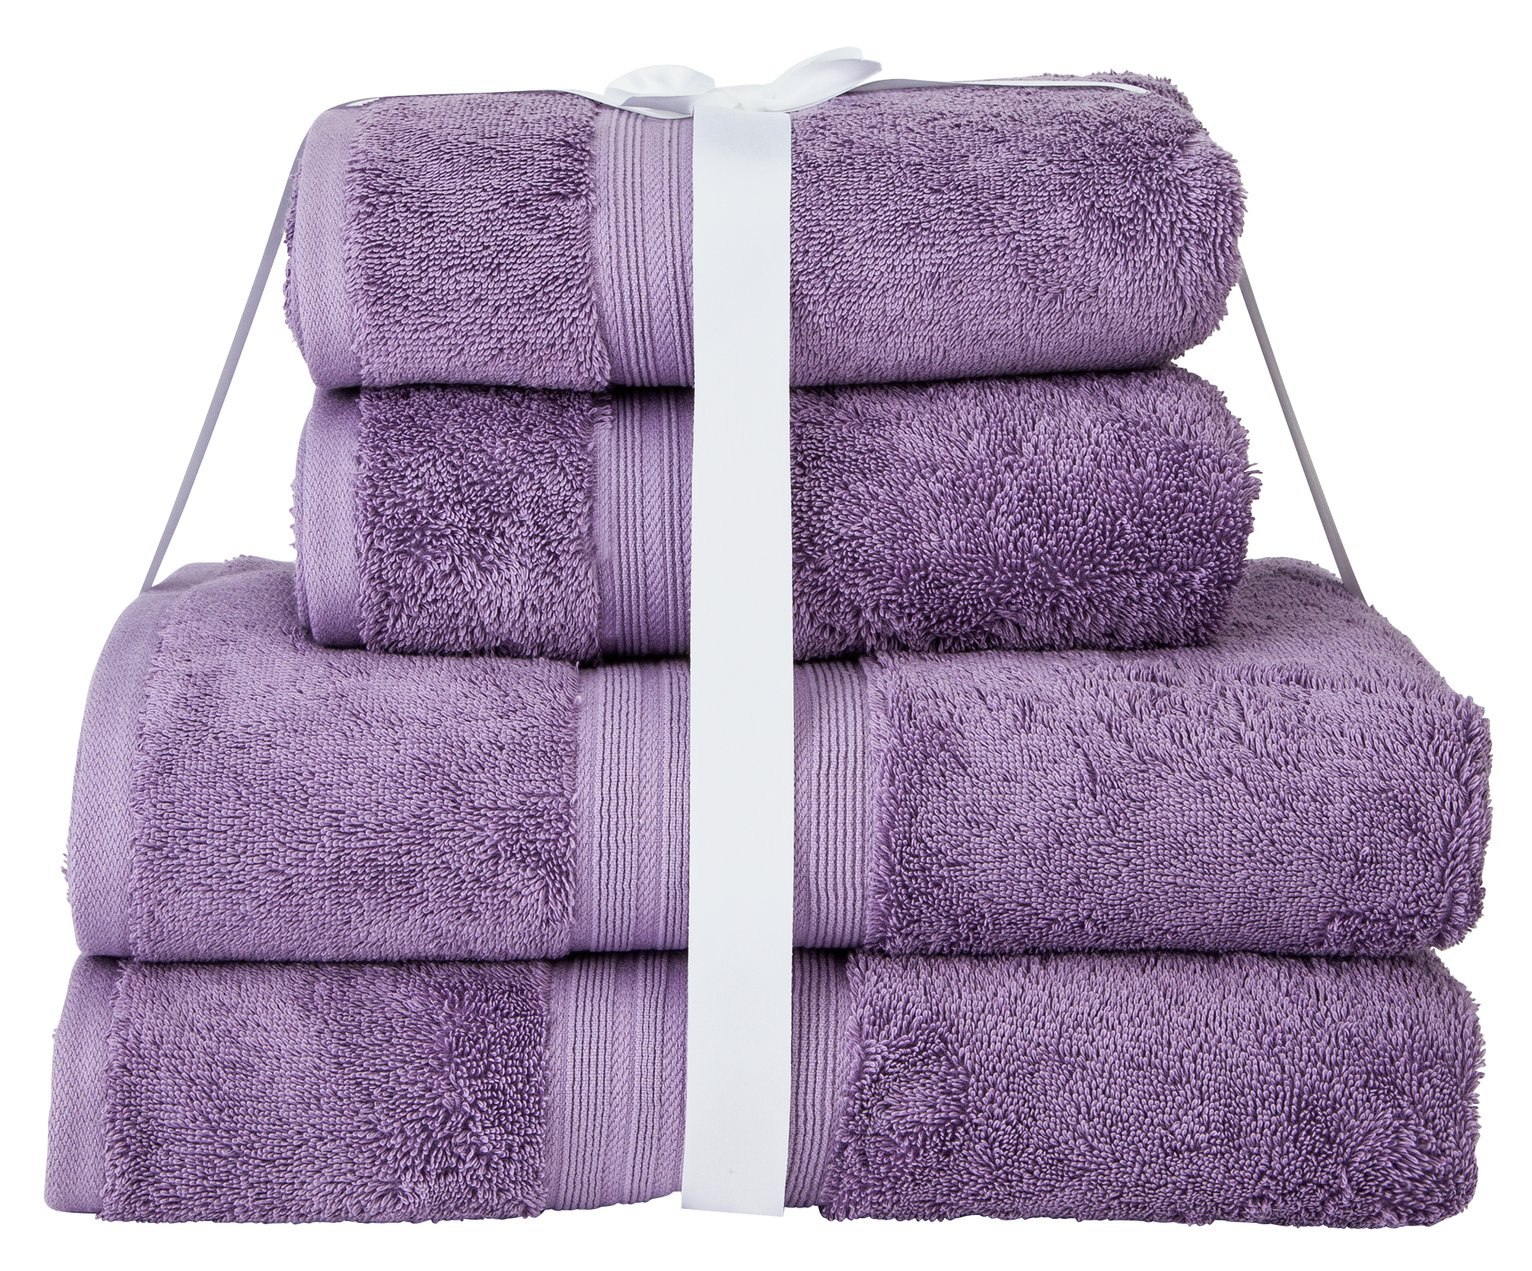 Argos Home Egyptian Cotton 4 Piece Towel Bale - Lilac